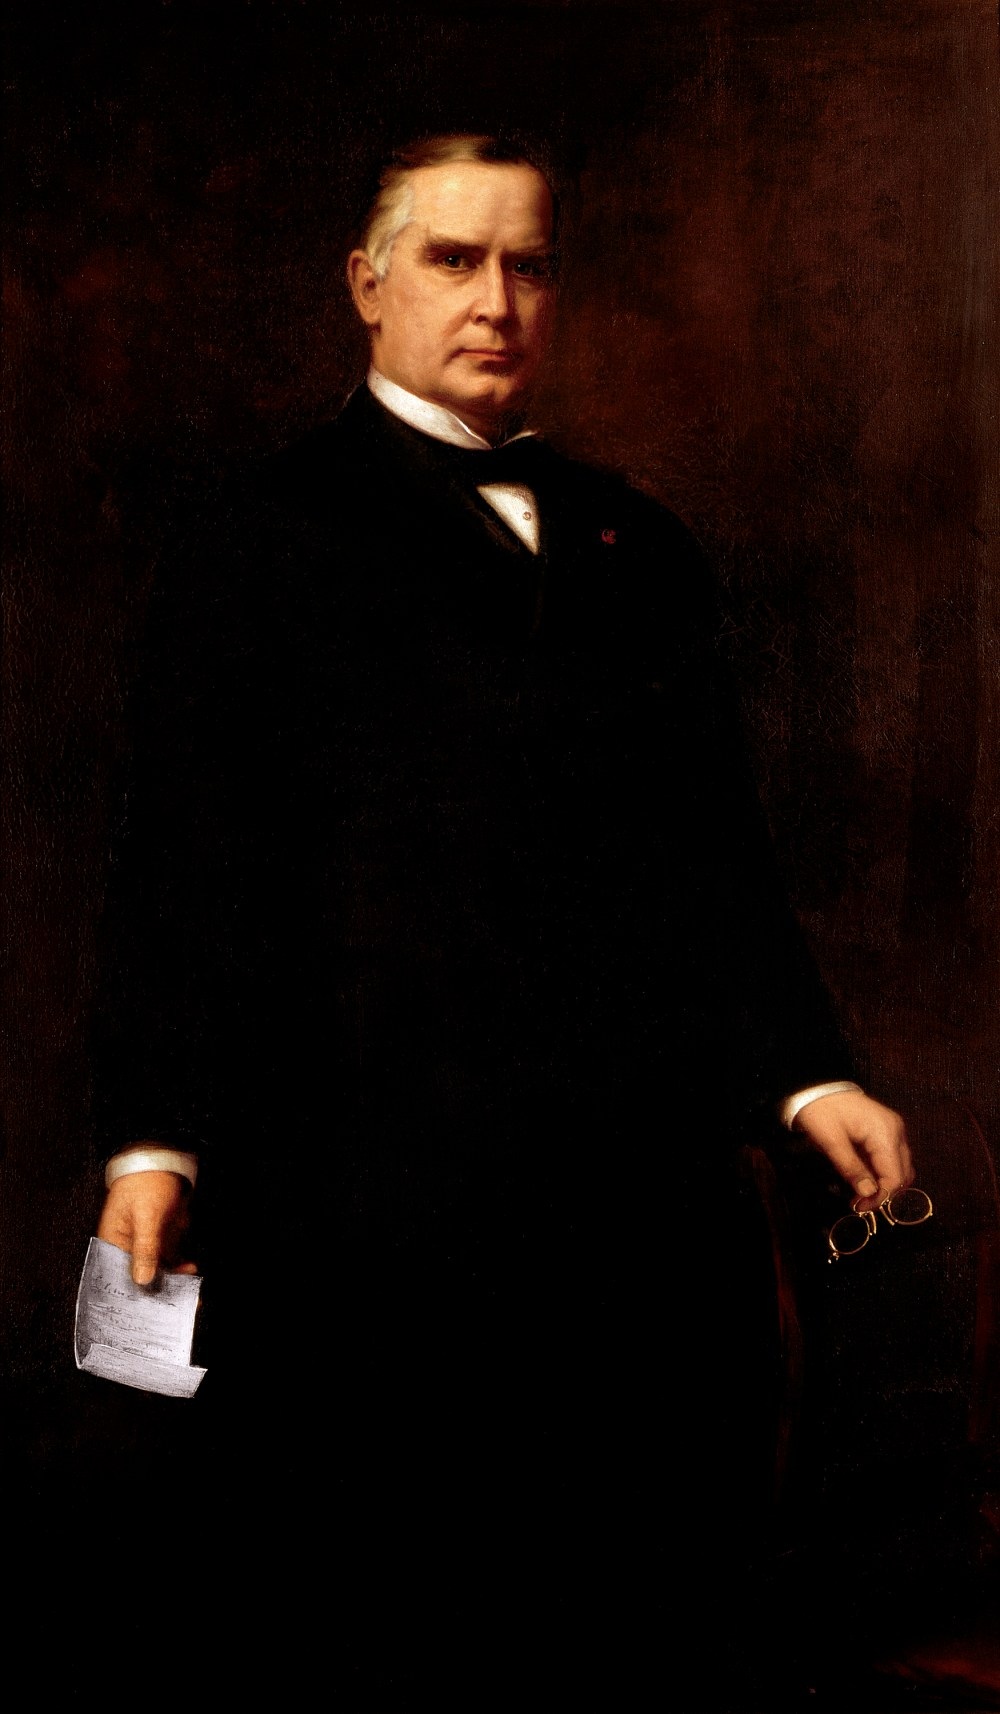 William McKinley, Presidential Portrait